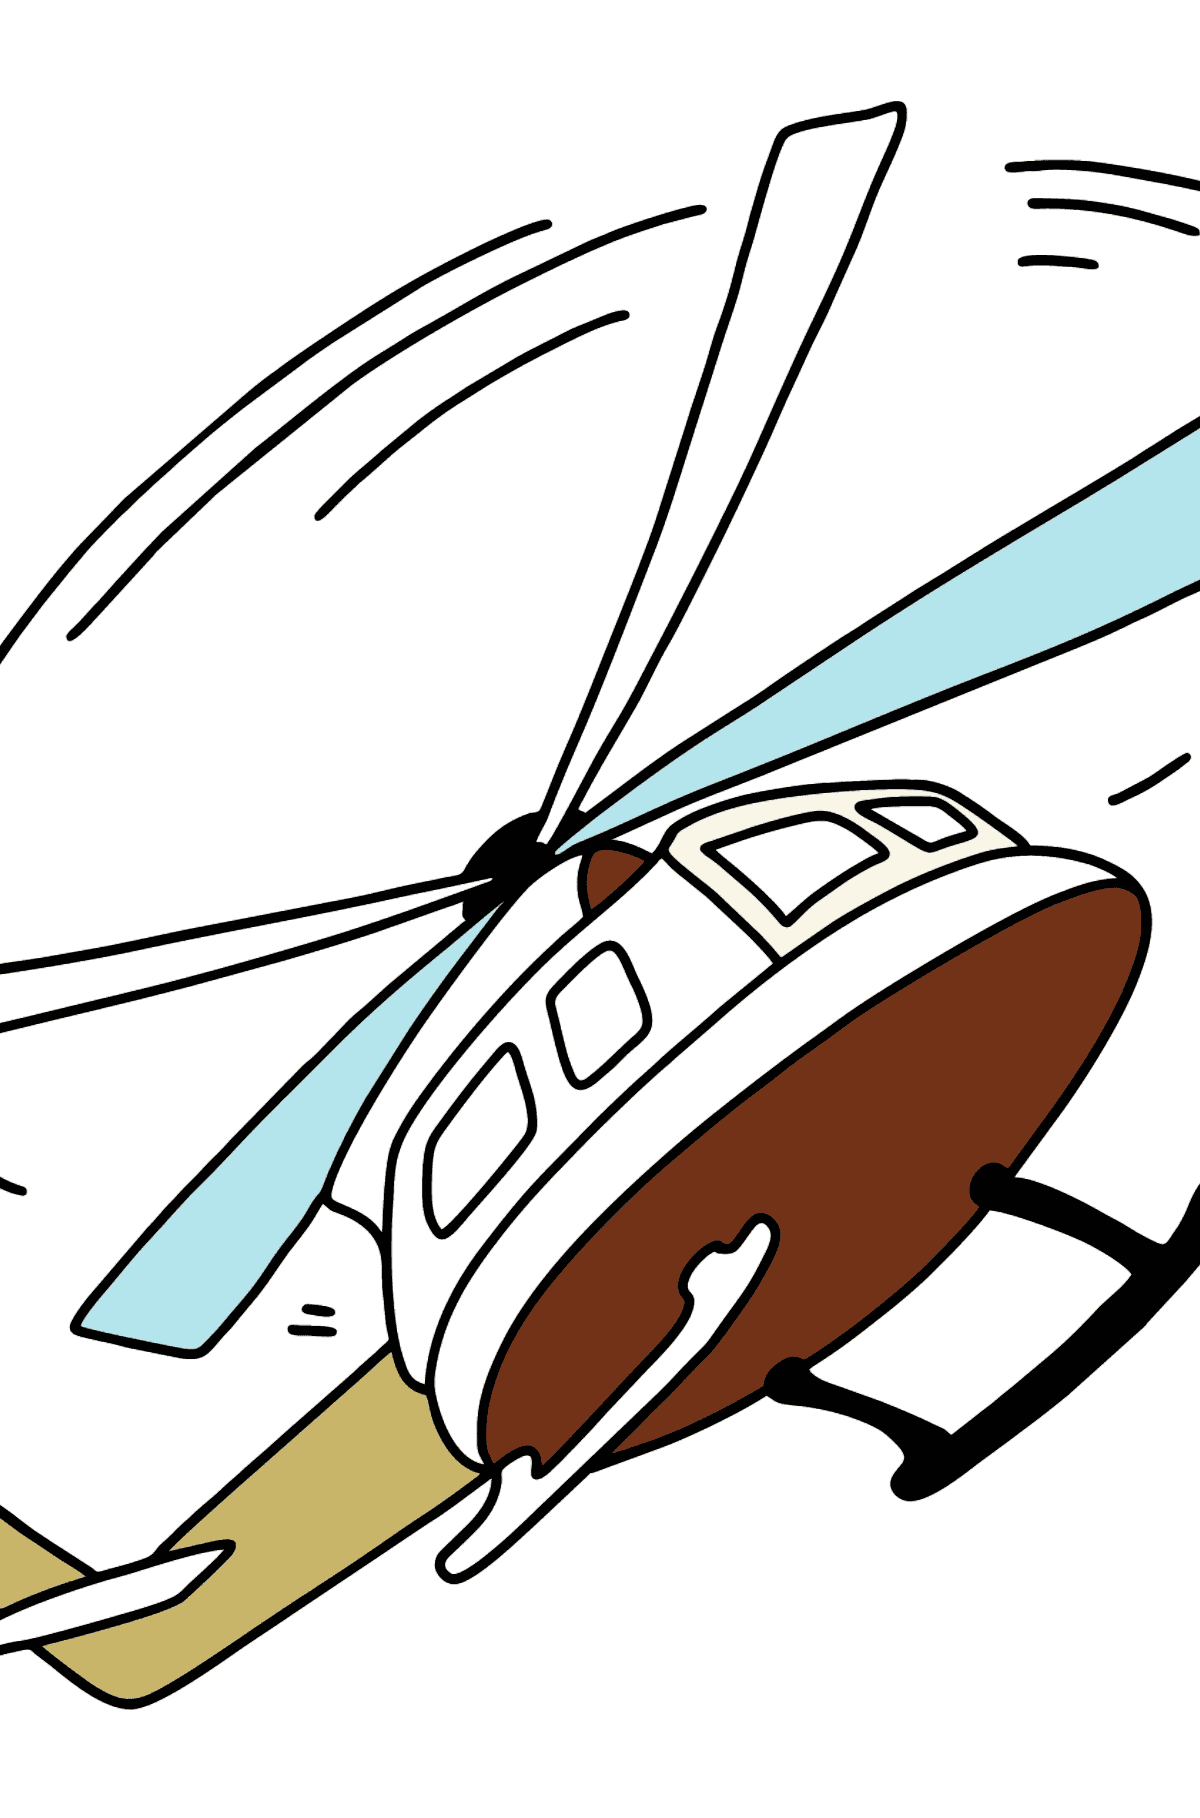 Helicopter coloring page online - Coloring Pages for Kids